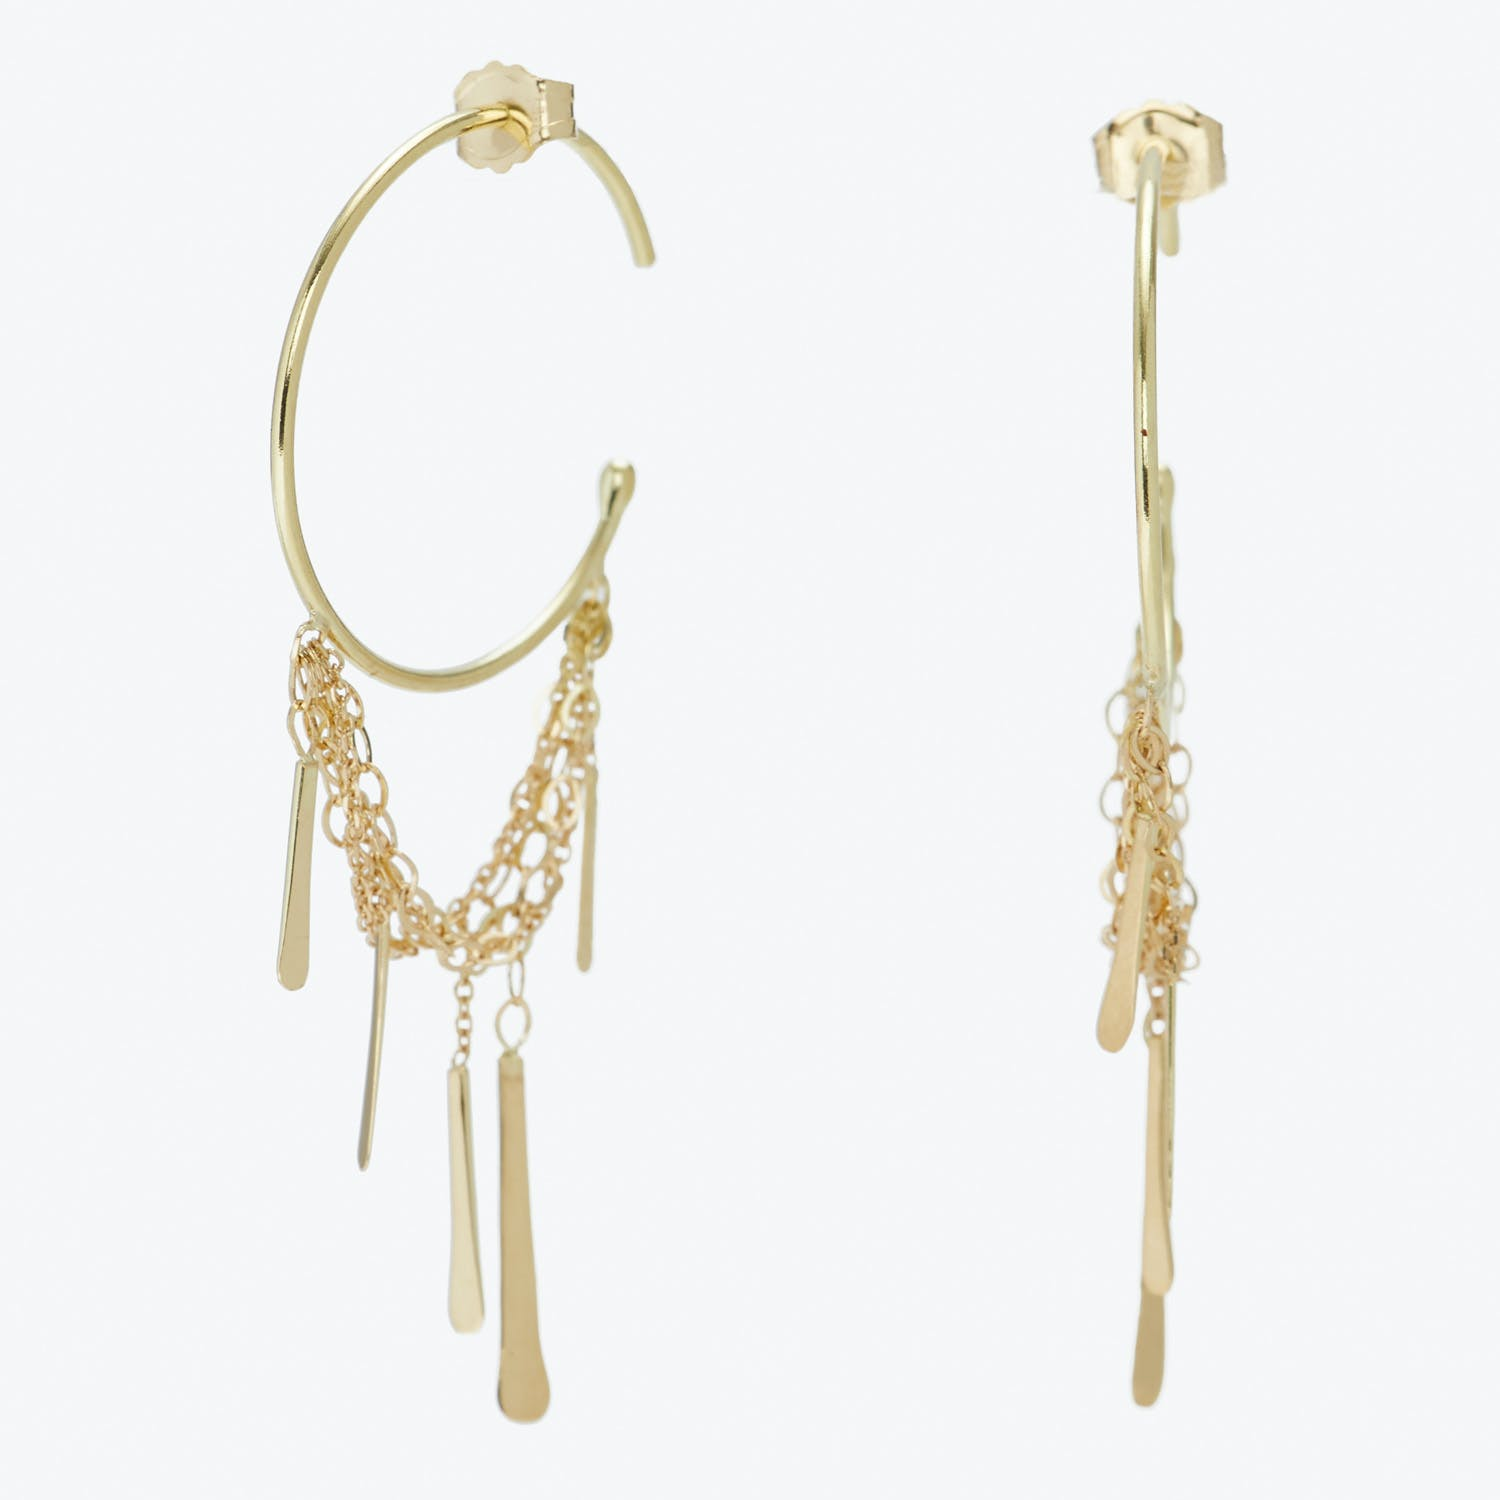 Bar with Layered Chains Hoop Earrings